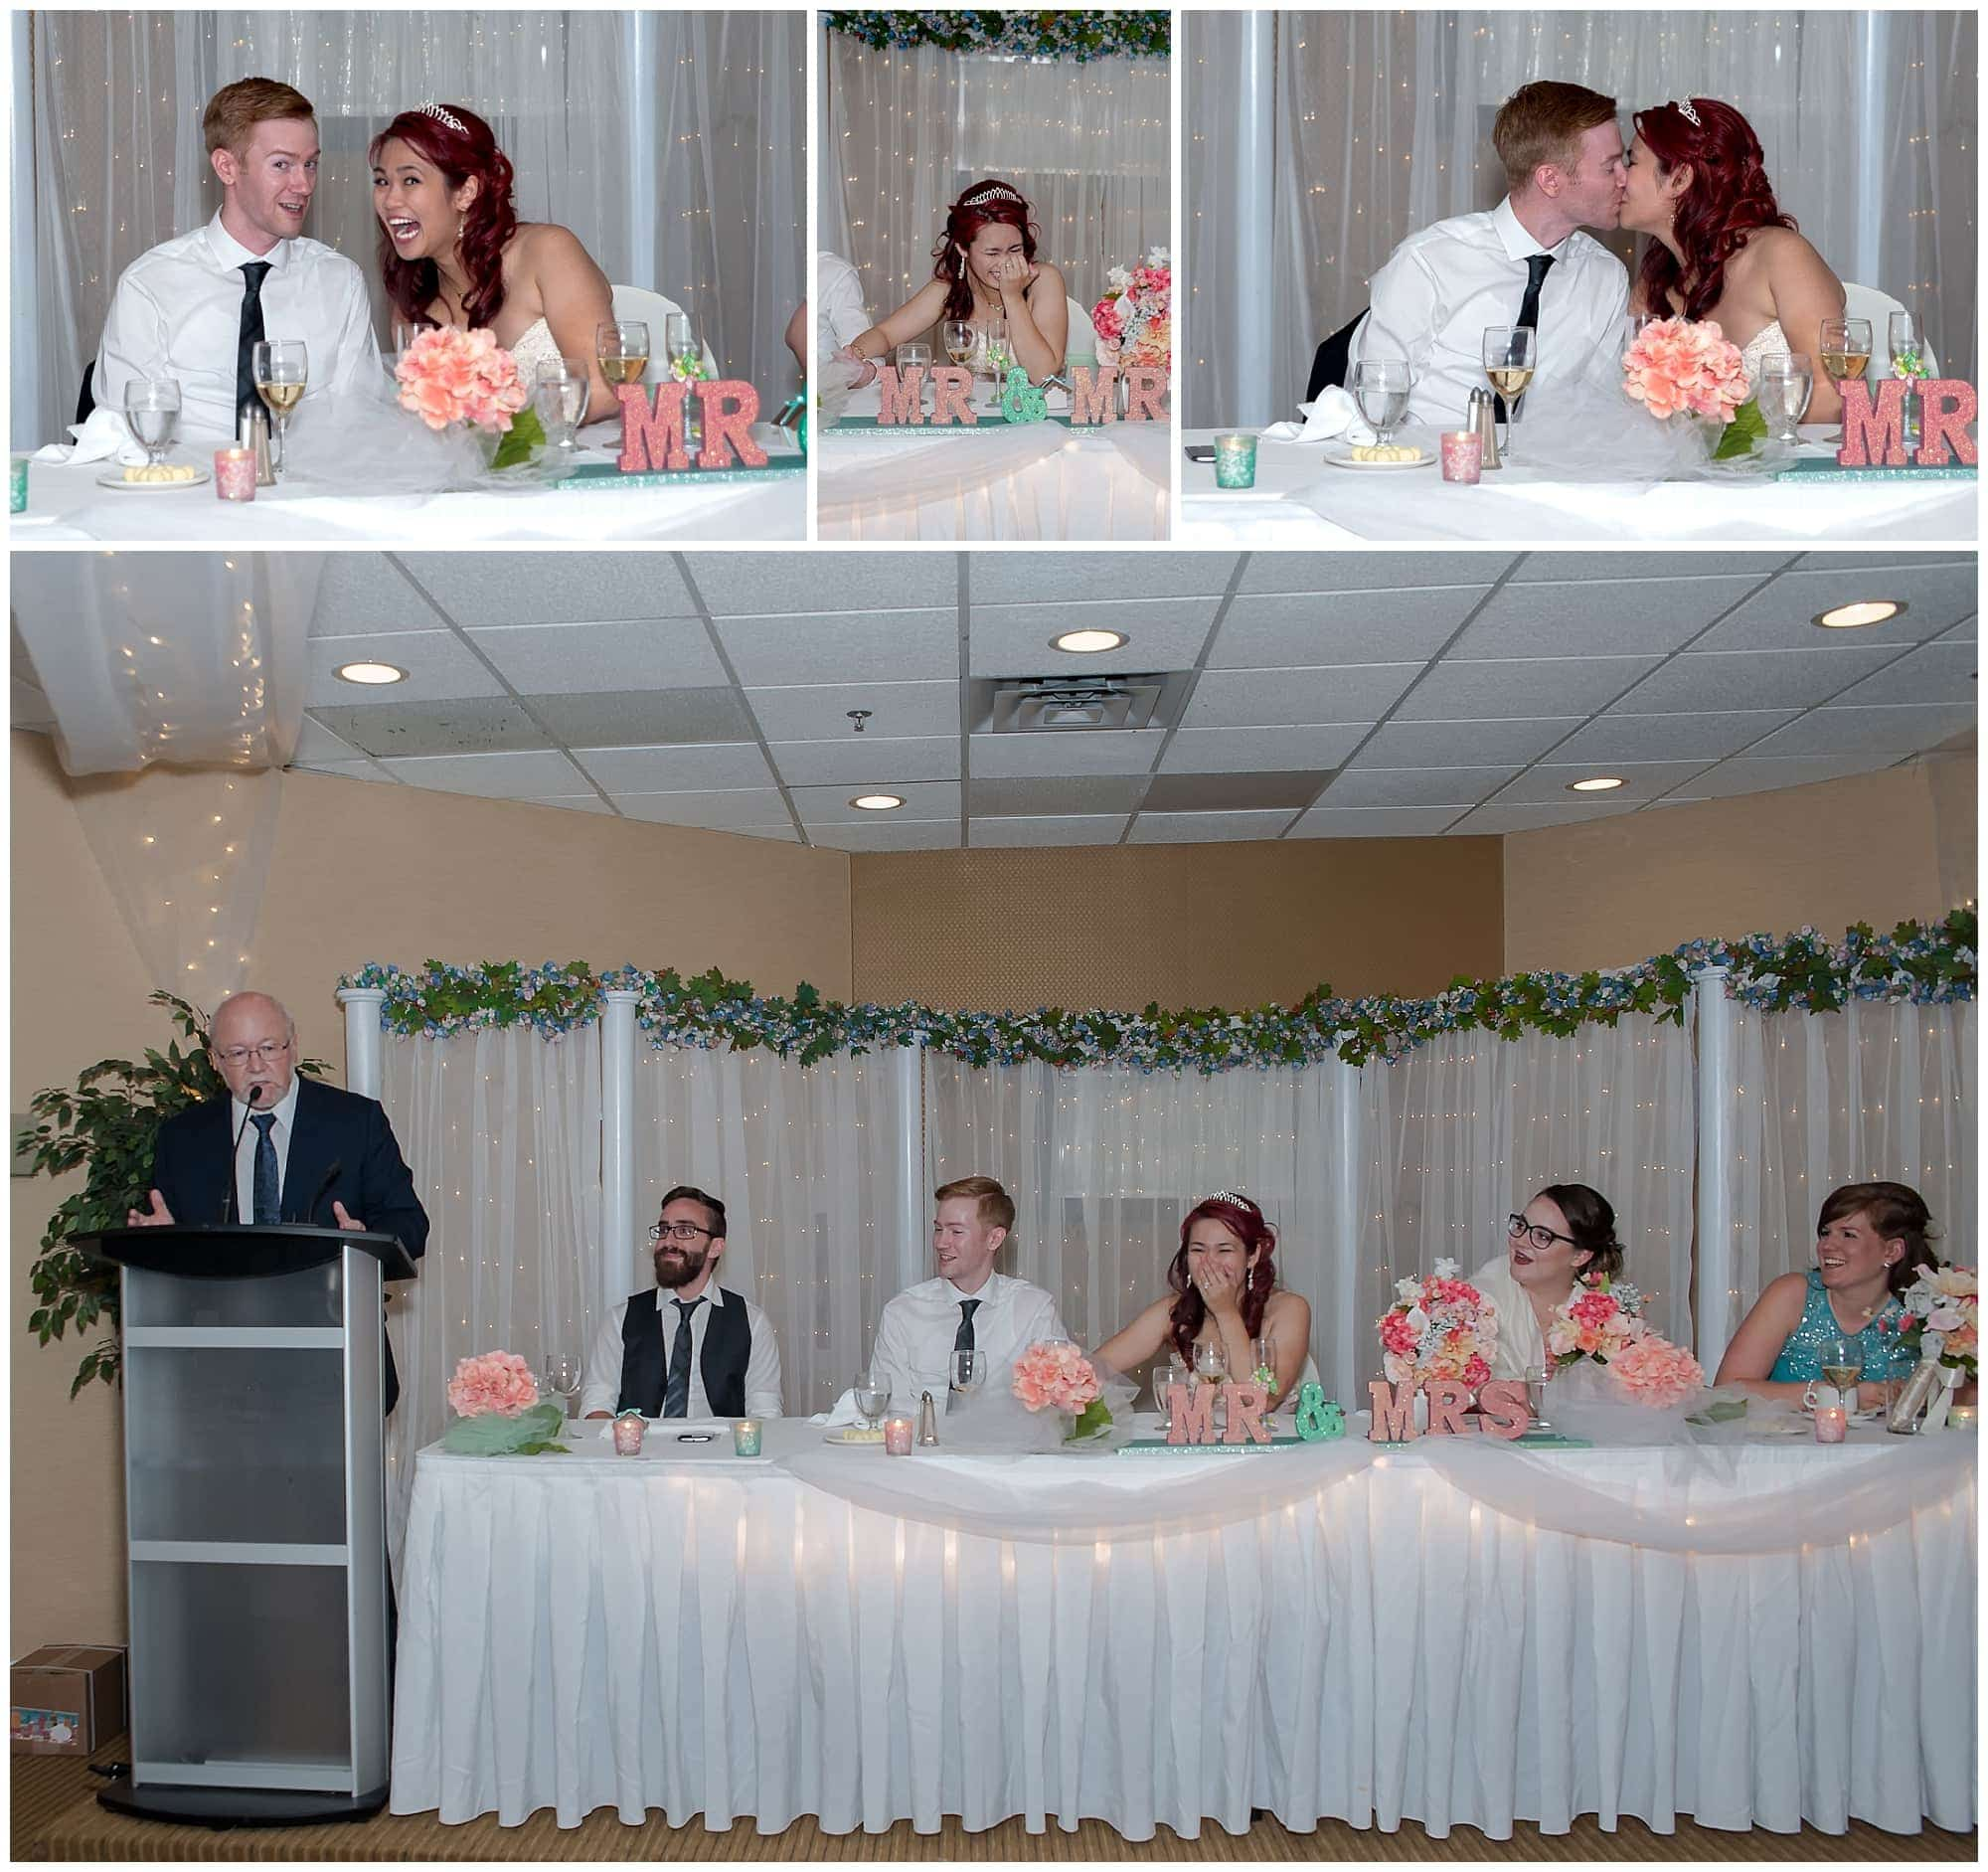 The wedding speech by the groom's father to the bride and groom during the wedding reception at the Atlantica Hotel in Halifax.